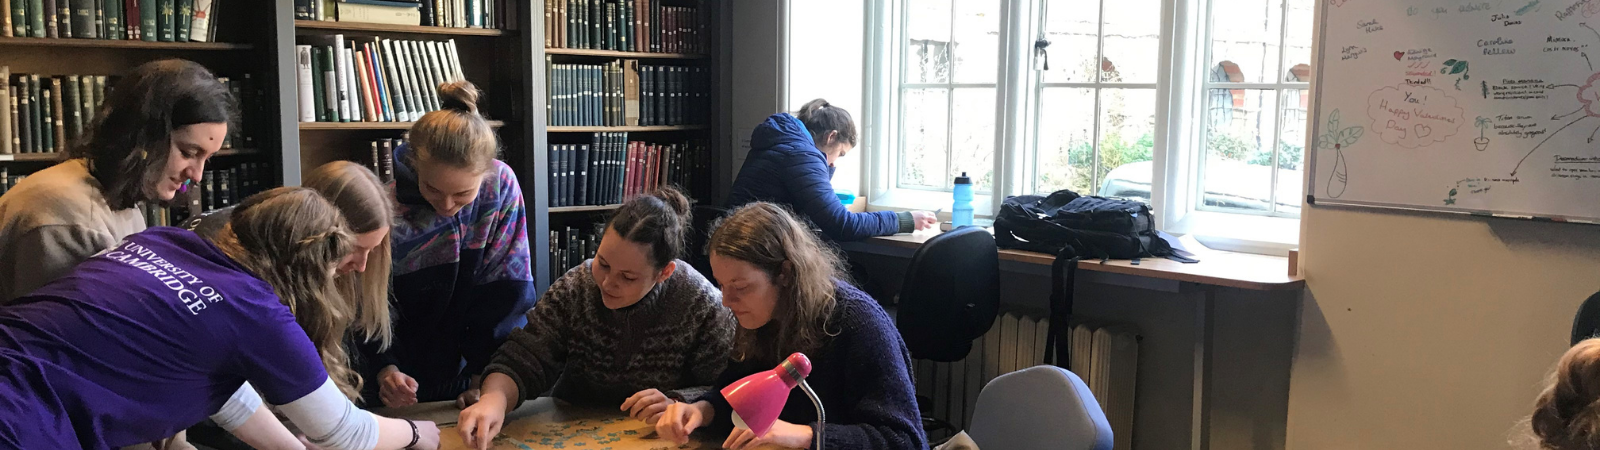 Students studying together in the Plant Sciences Library space